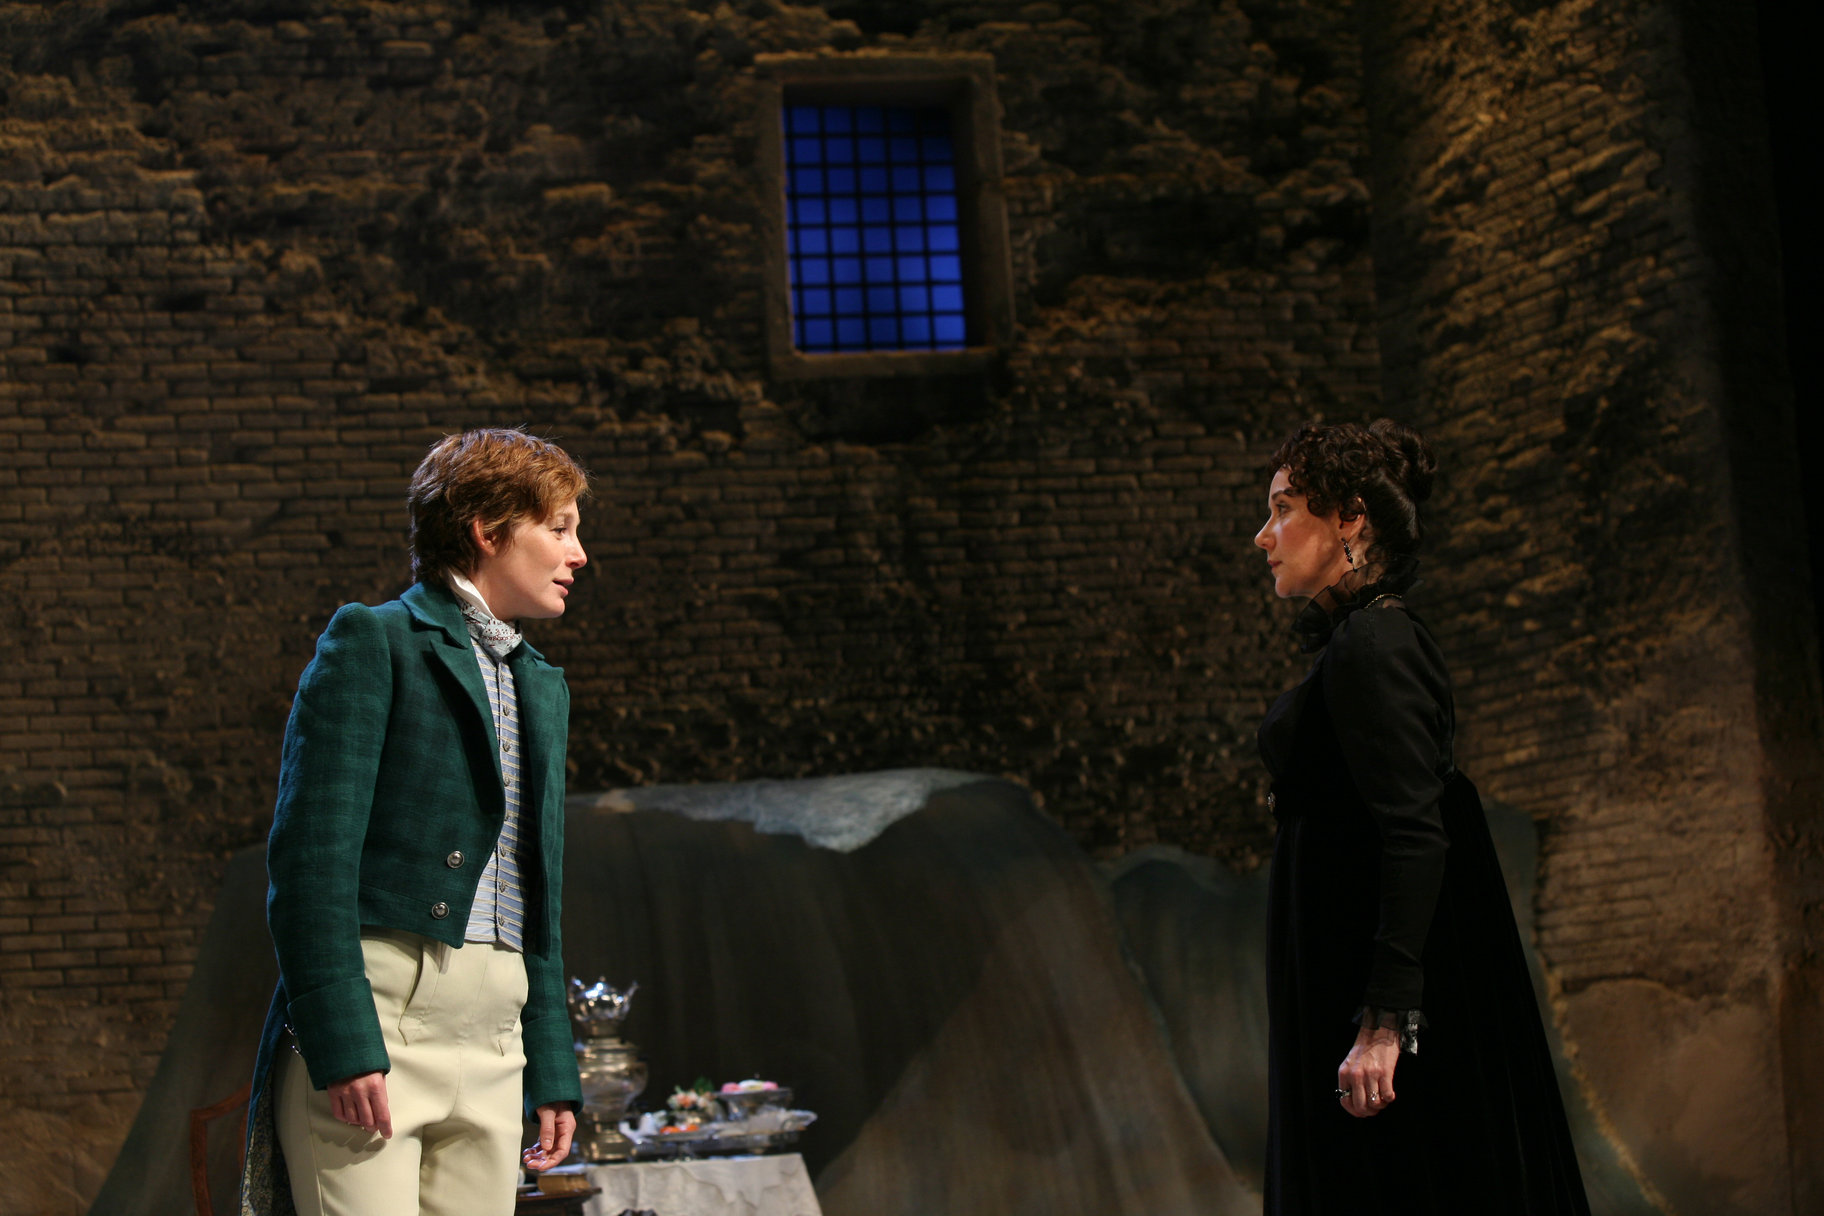 Olivia and 'Cesario' stare at each other, standing apart, in the 1955 production of Twelfth Night.